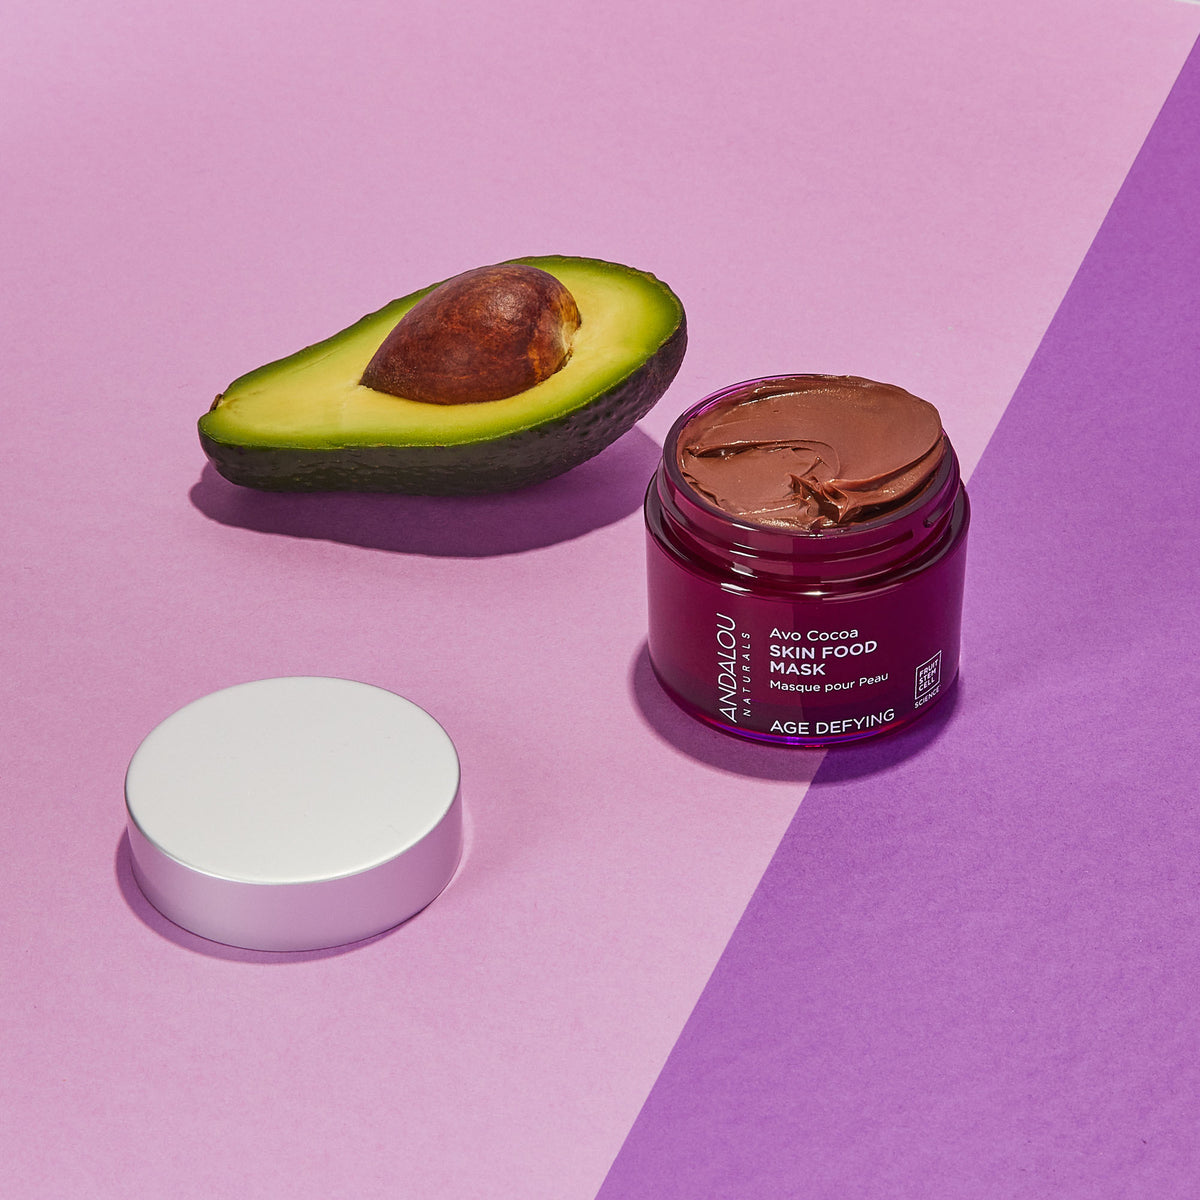 Andalou Naturals Age Defying Avo Cocoa Skin Food Mask with avocado